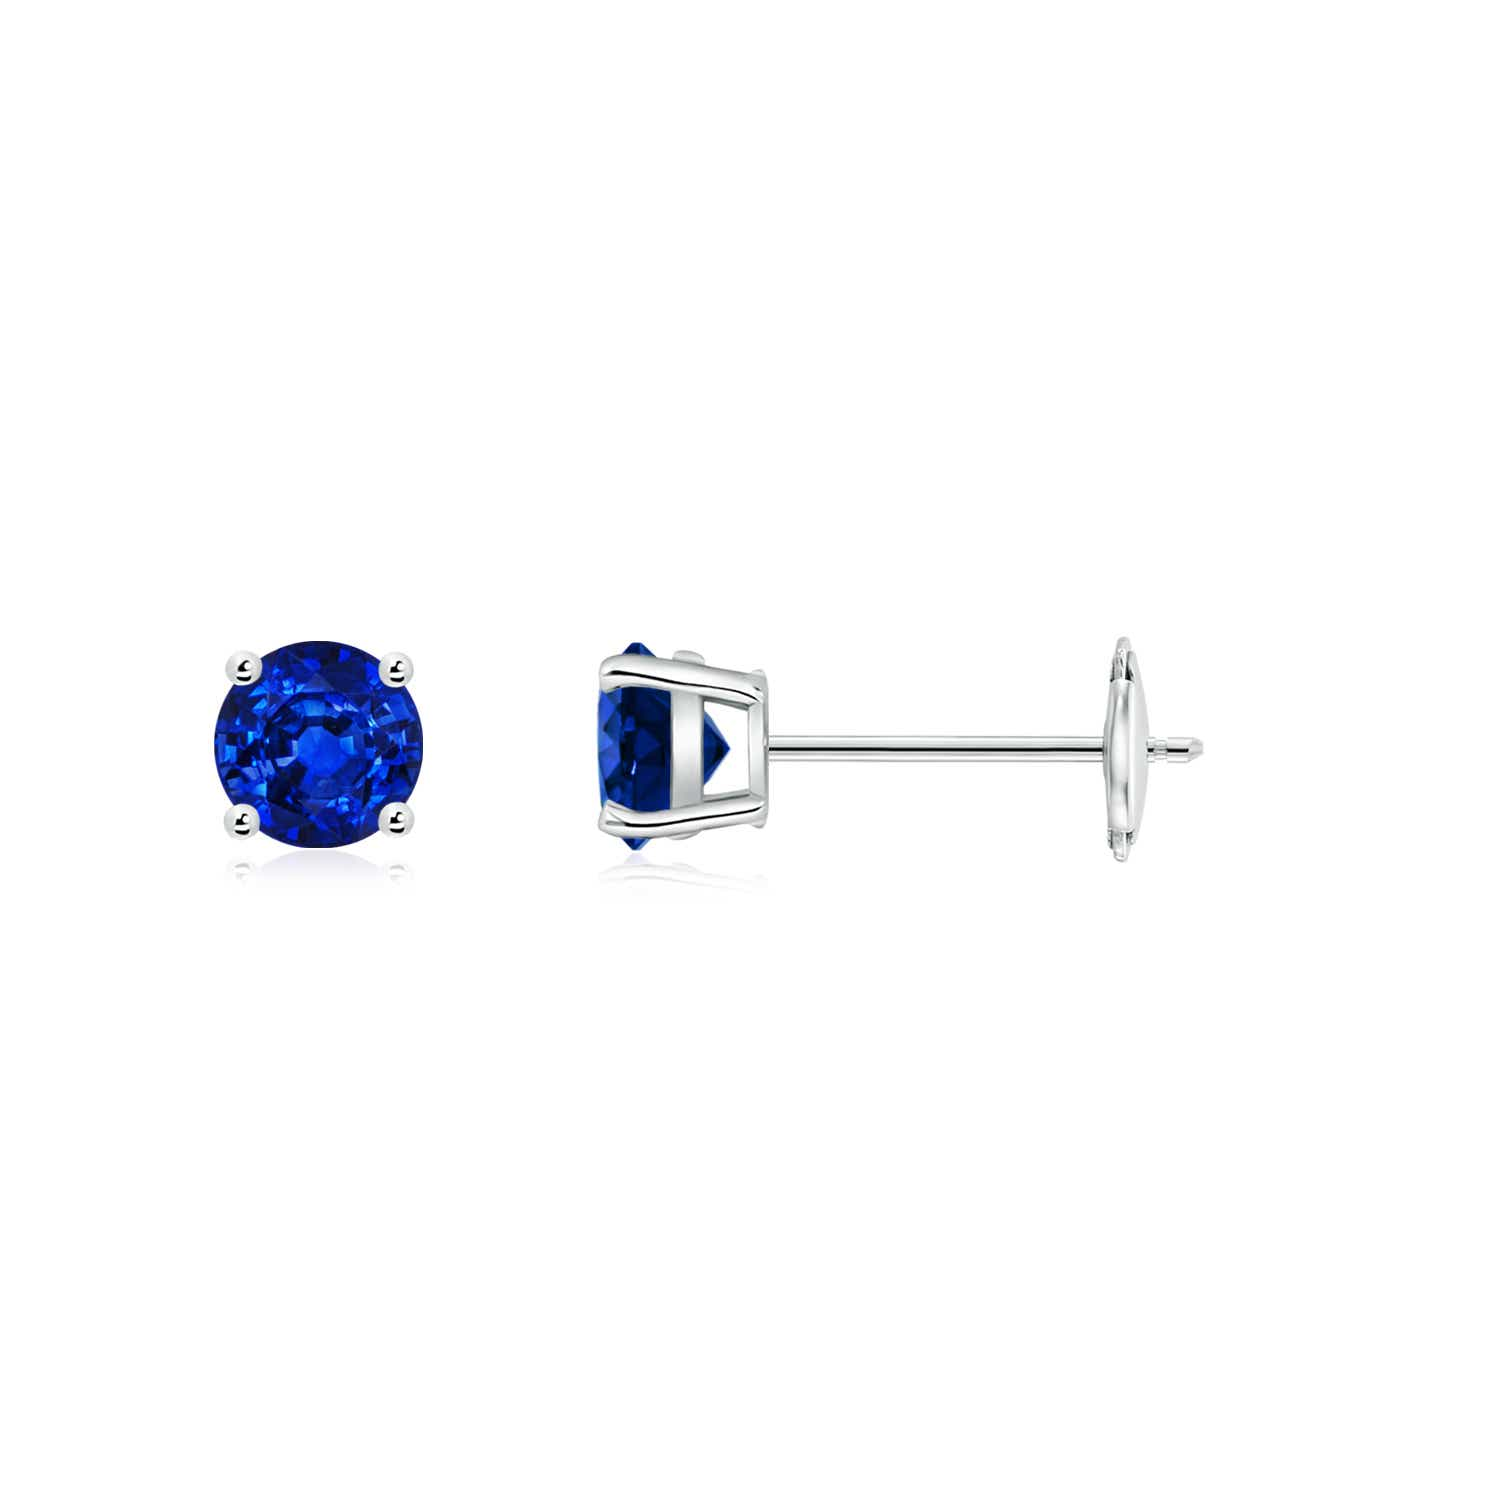 06af87248 Round Blue Sapphire Stud Earrings